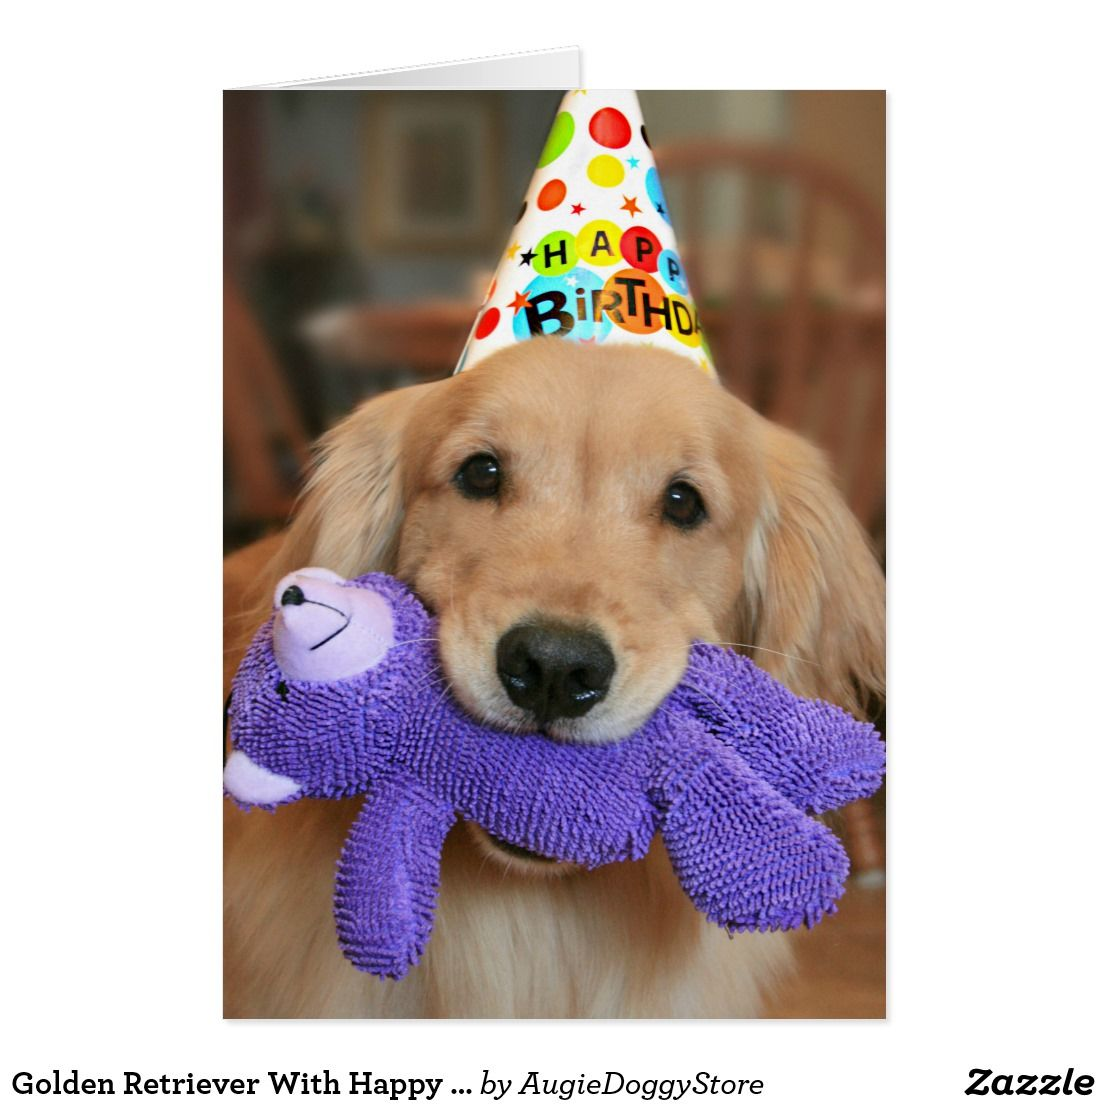 Golden Retriever With Happy Birthday Hat And Toy Card Zazzle Com